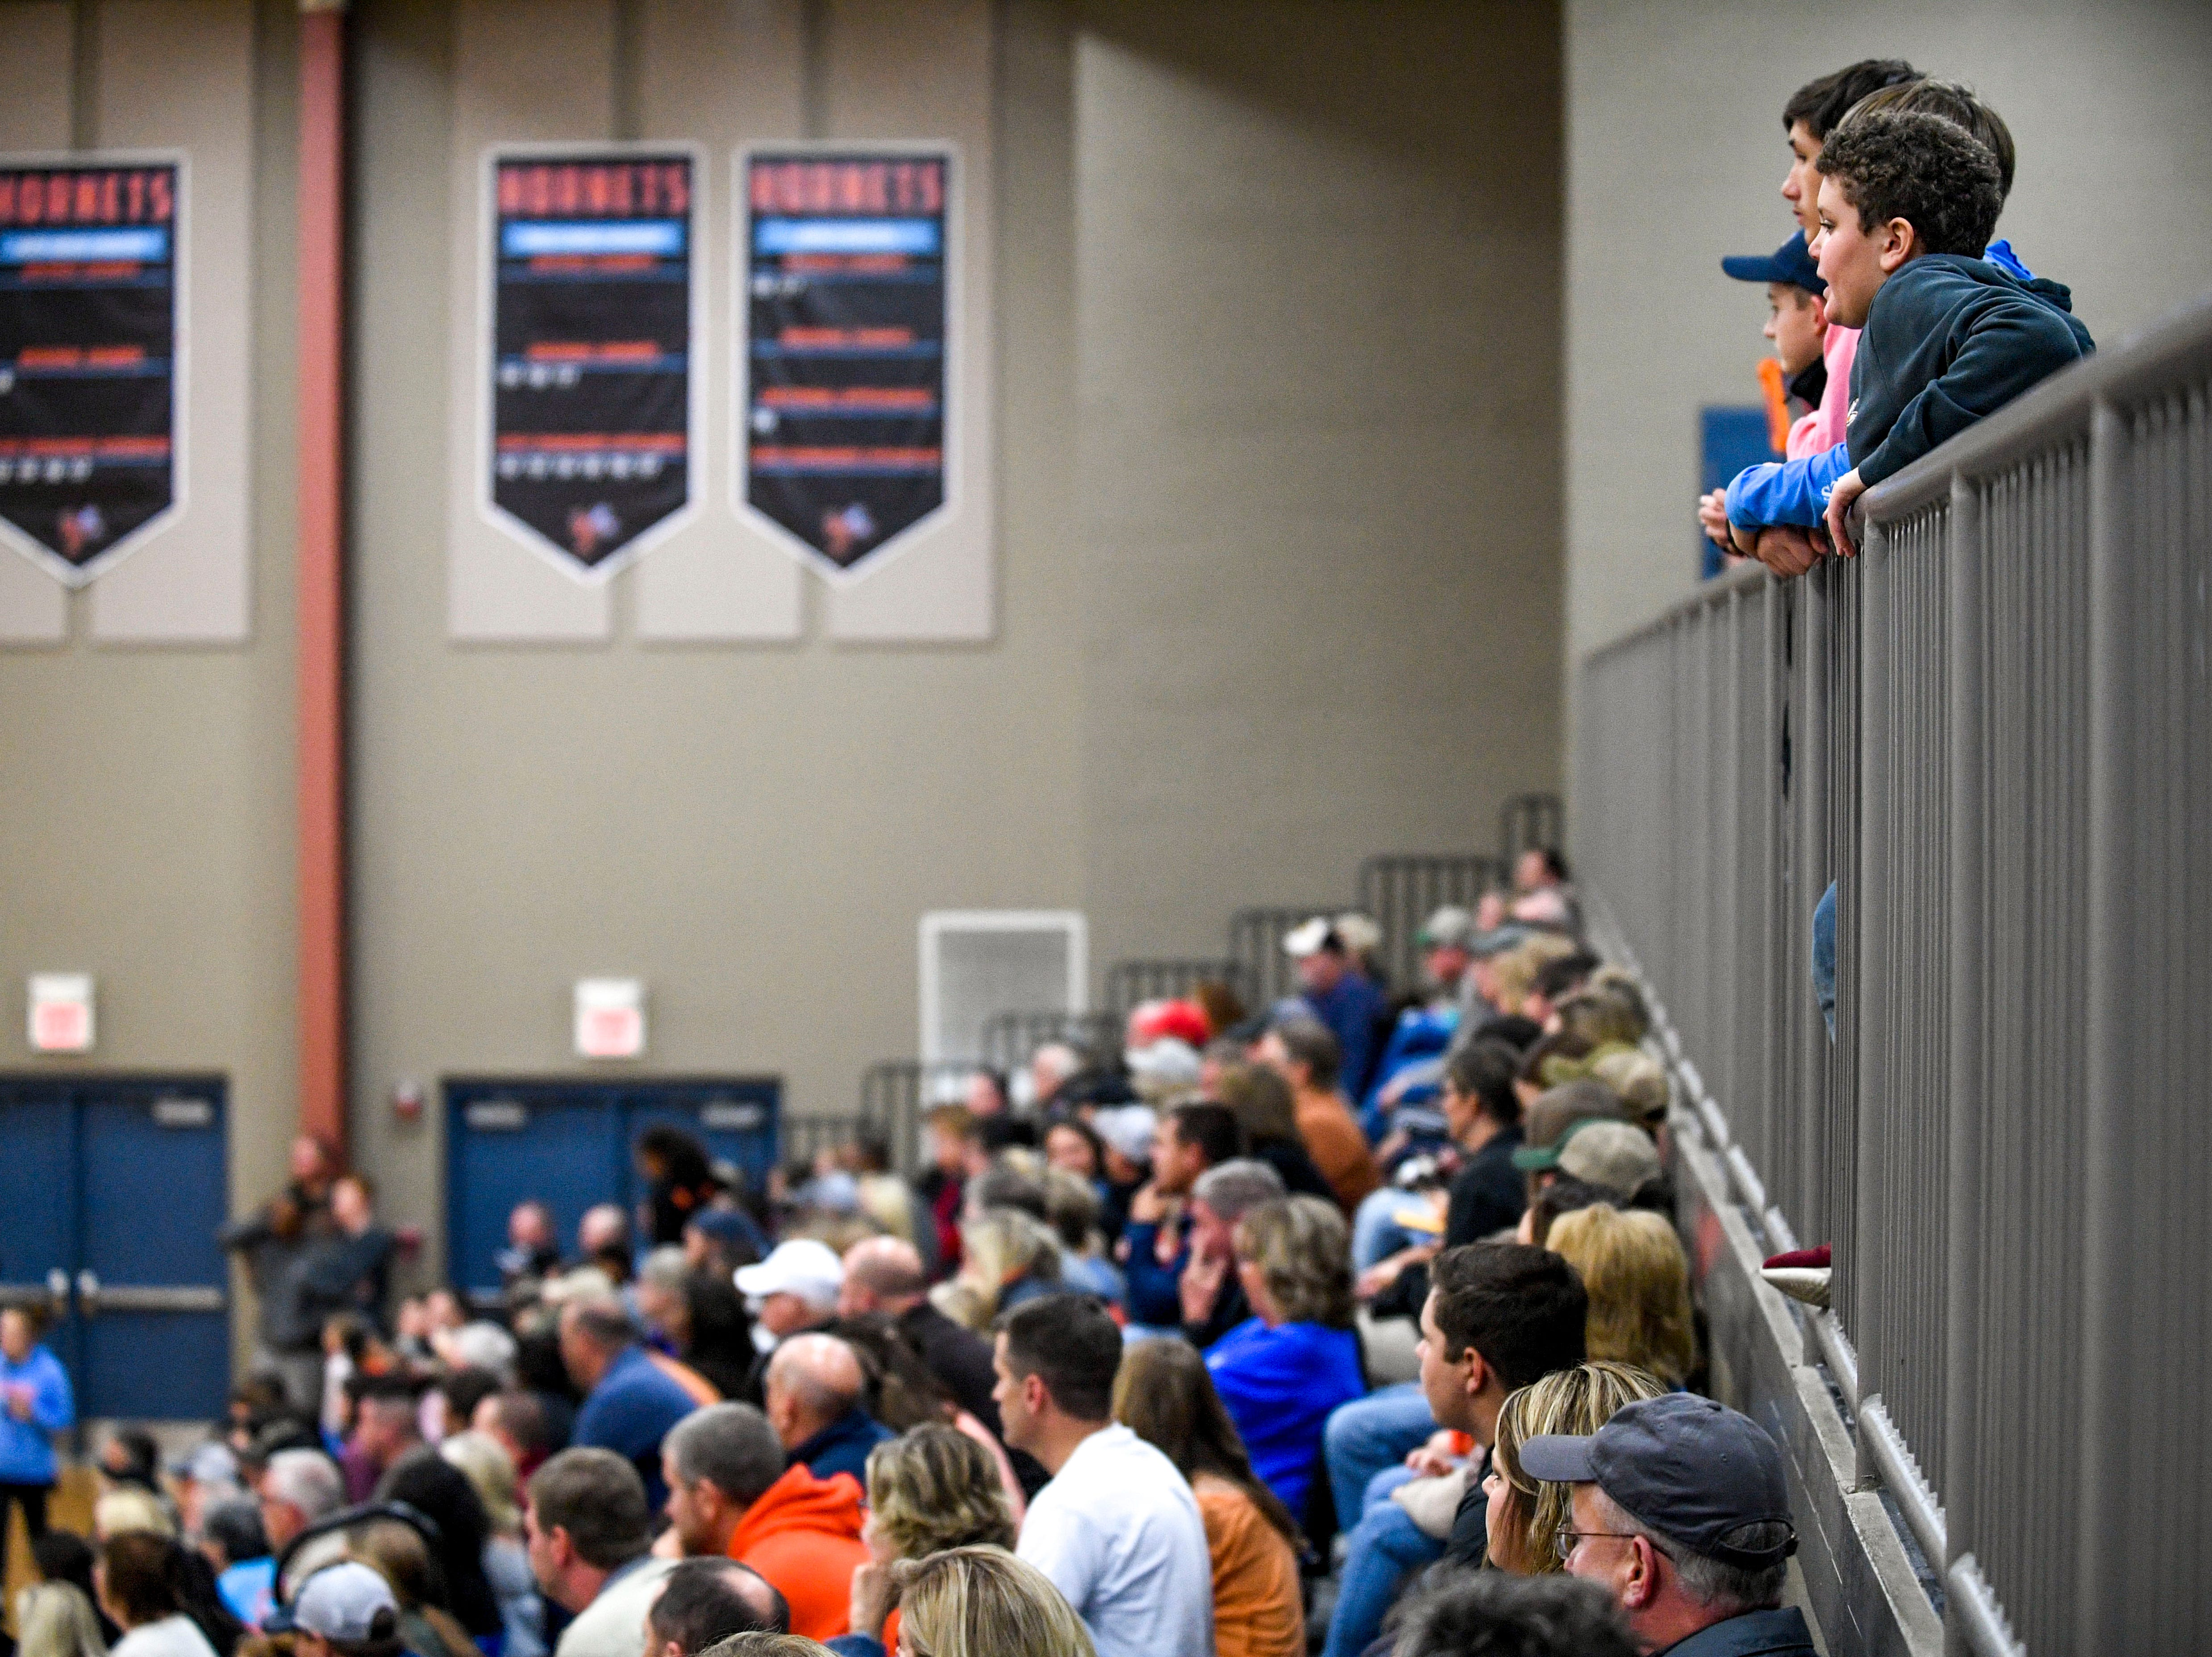 South Gibson fans watch from the upper level of the stands in a TSSAA boys basketball game between South Gibson and Haywood High Schools at South Gibson High School in Medina, Tenn., on Tuesday, Nov. 27, 2018.